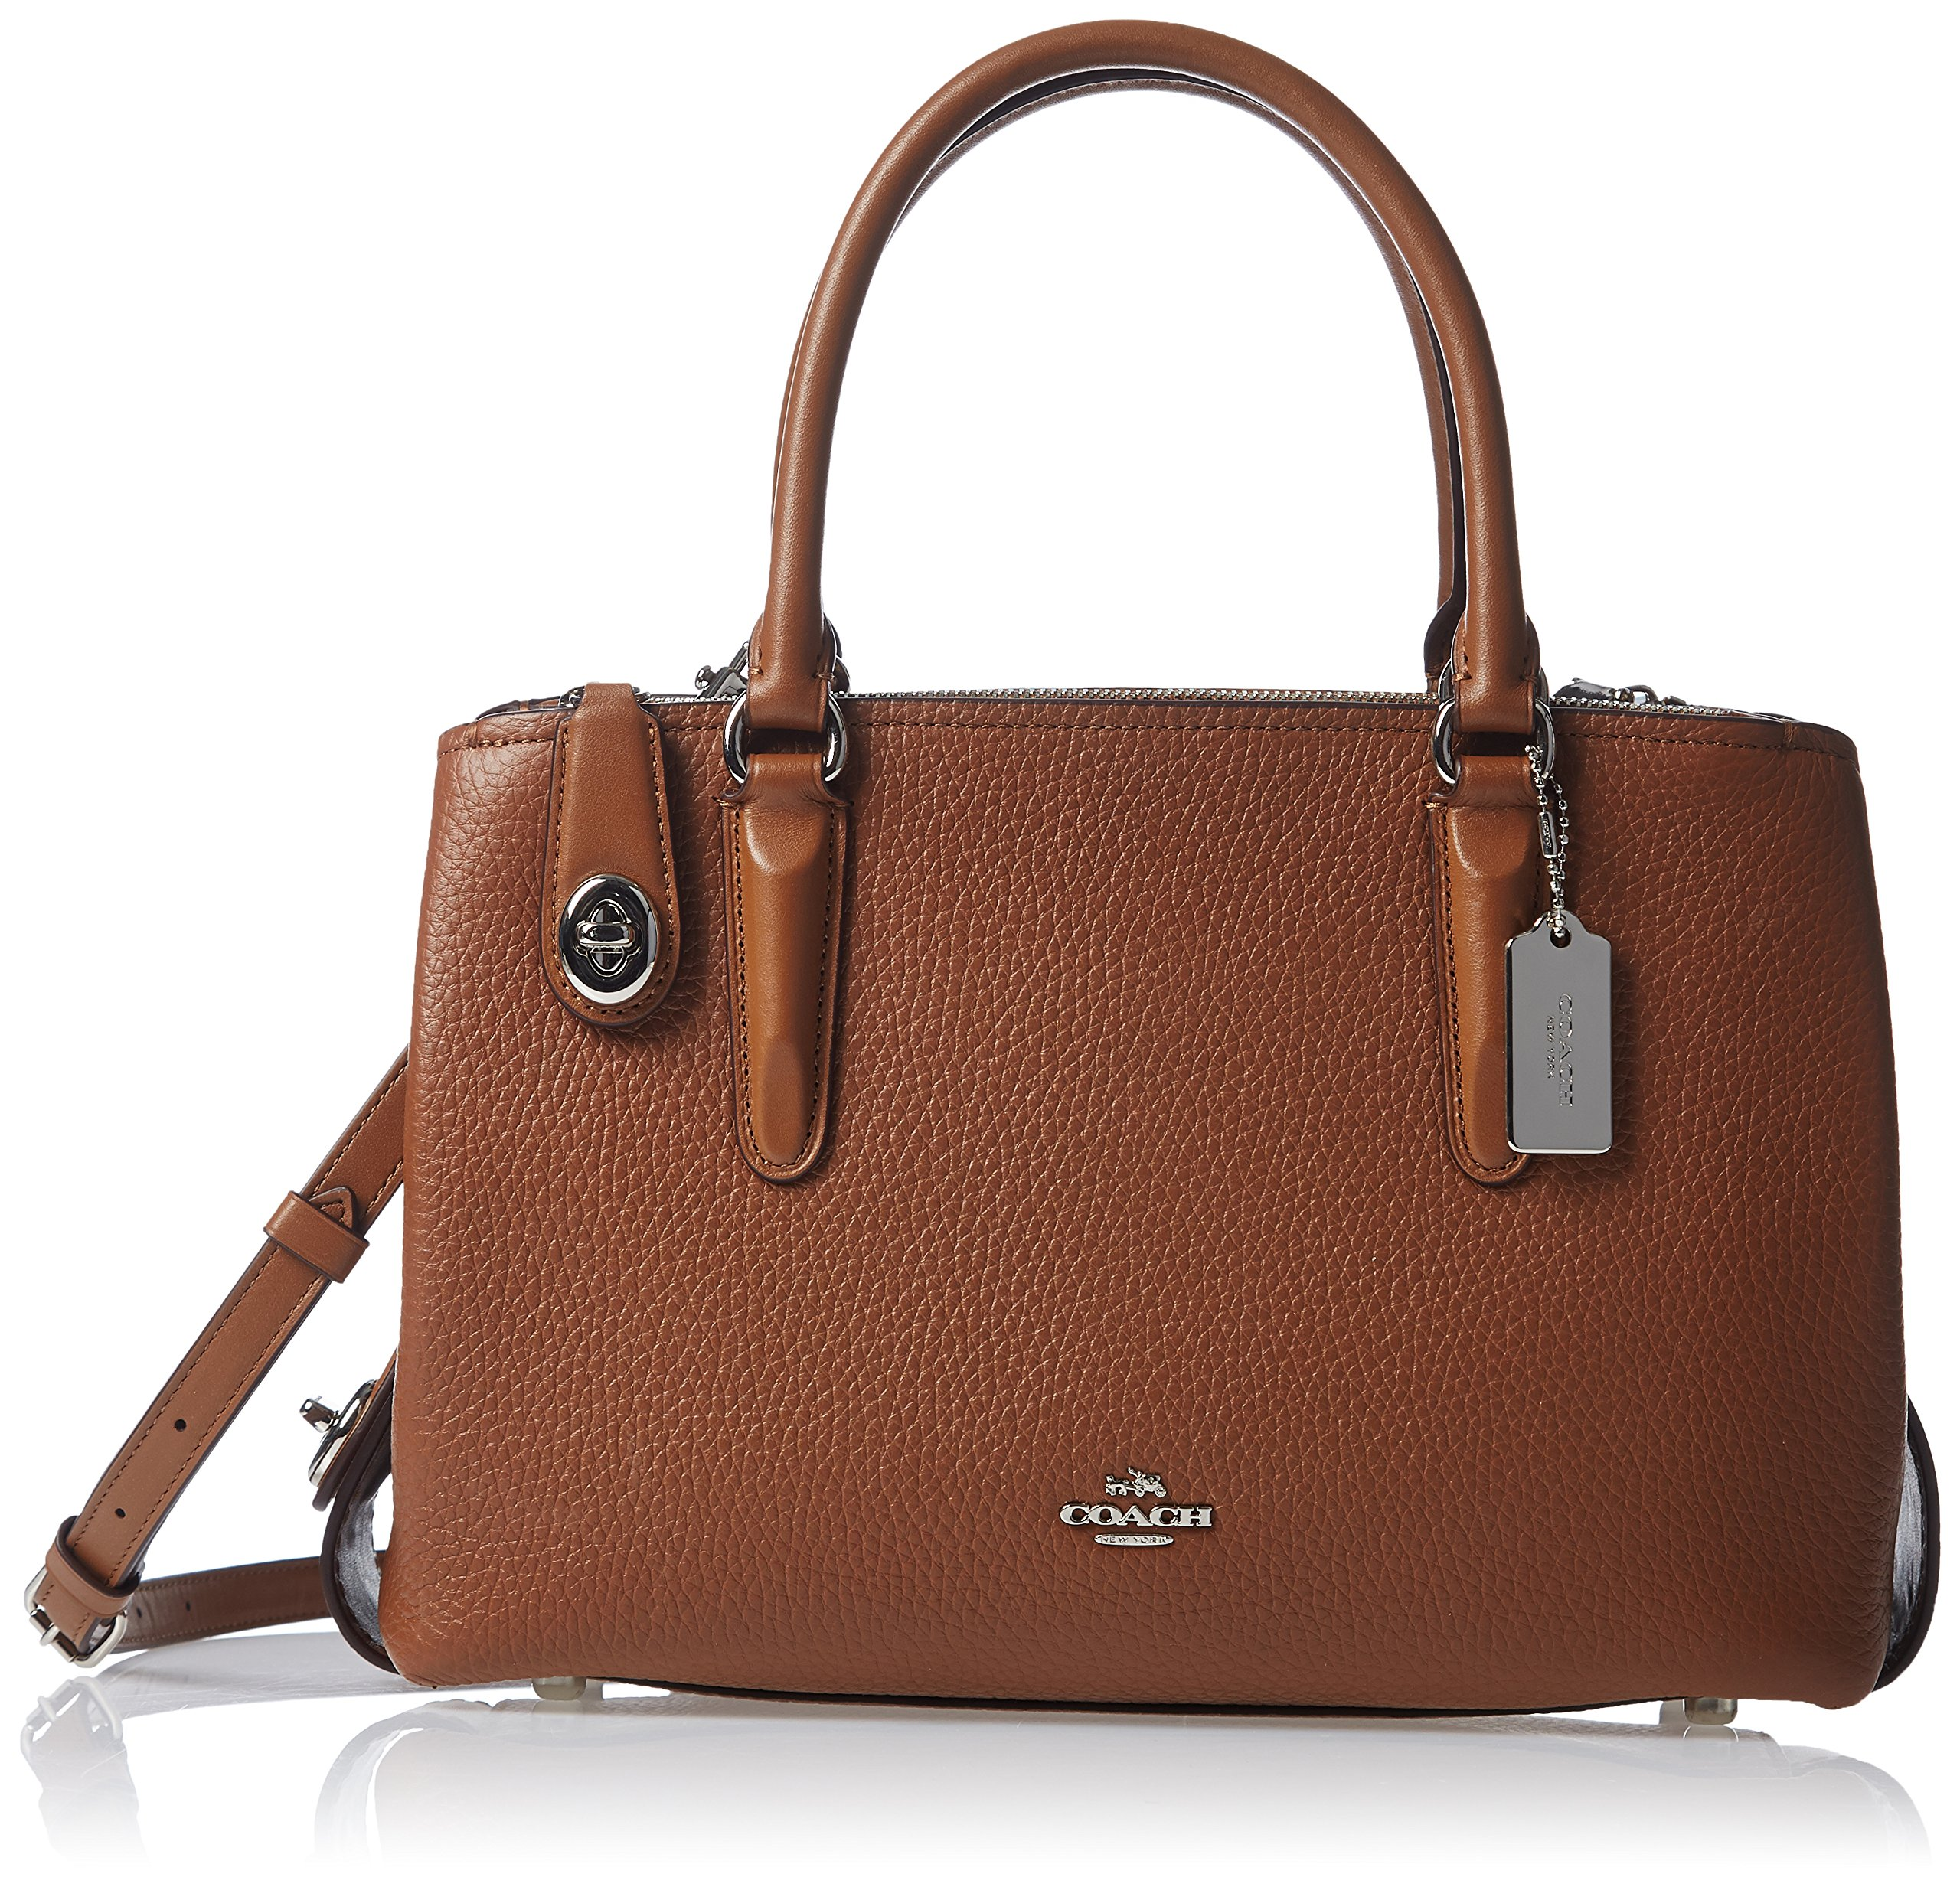 COACH Women's Pebbled Brooklyn 28 Carryall SV/Saddle Satchel